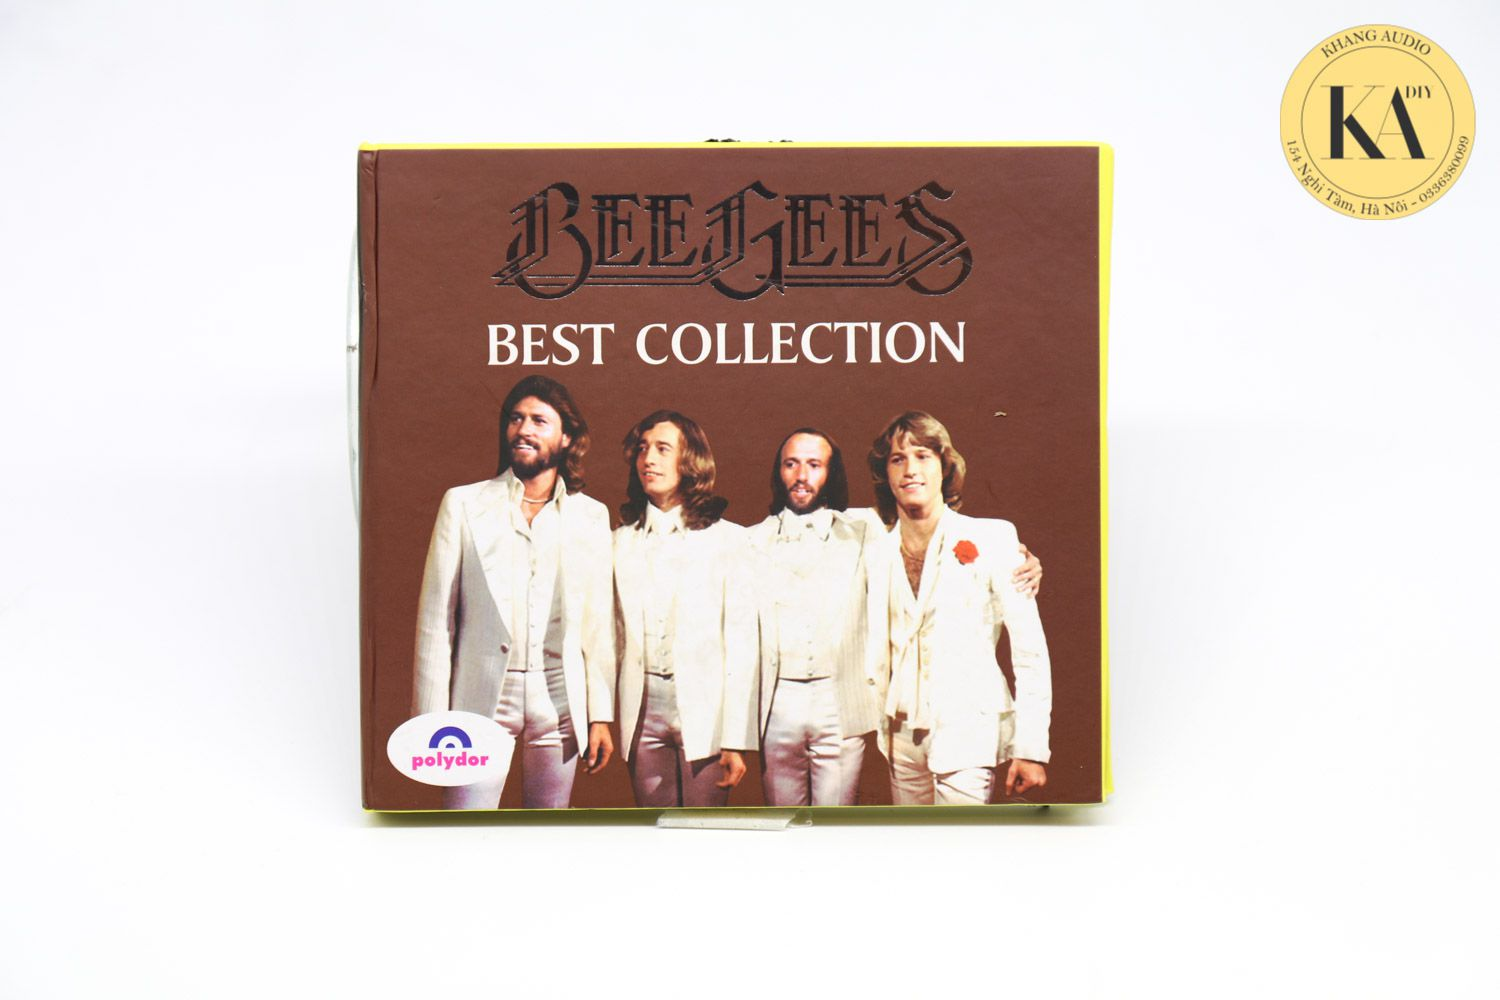 Best Collection - Beegees Khang Audio 0336380099